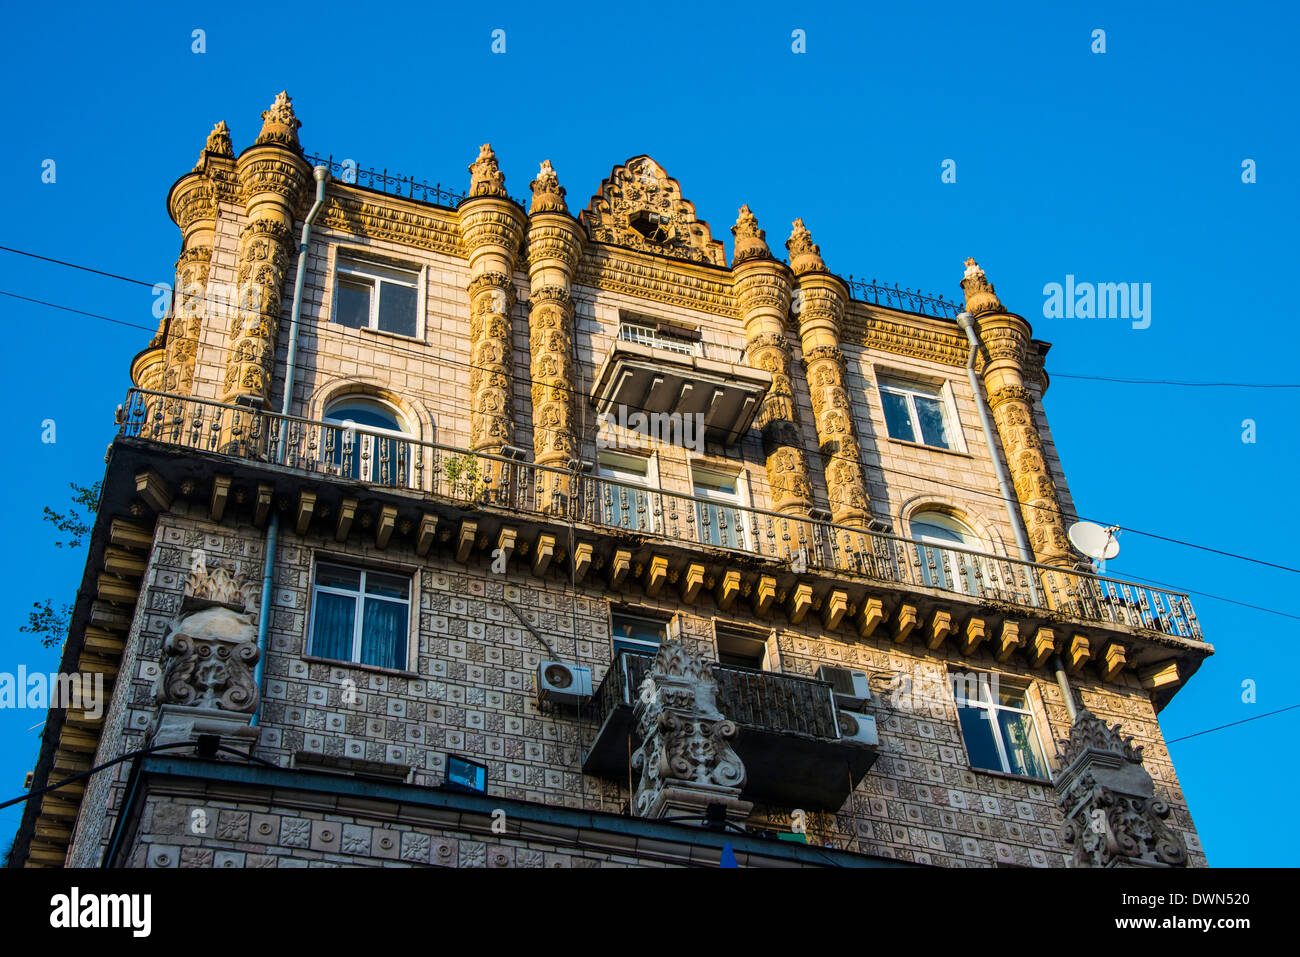 Stalinist architecture in the center of Kiev (Kyiv), Ukraine, Europe Stock Photo